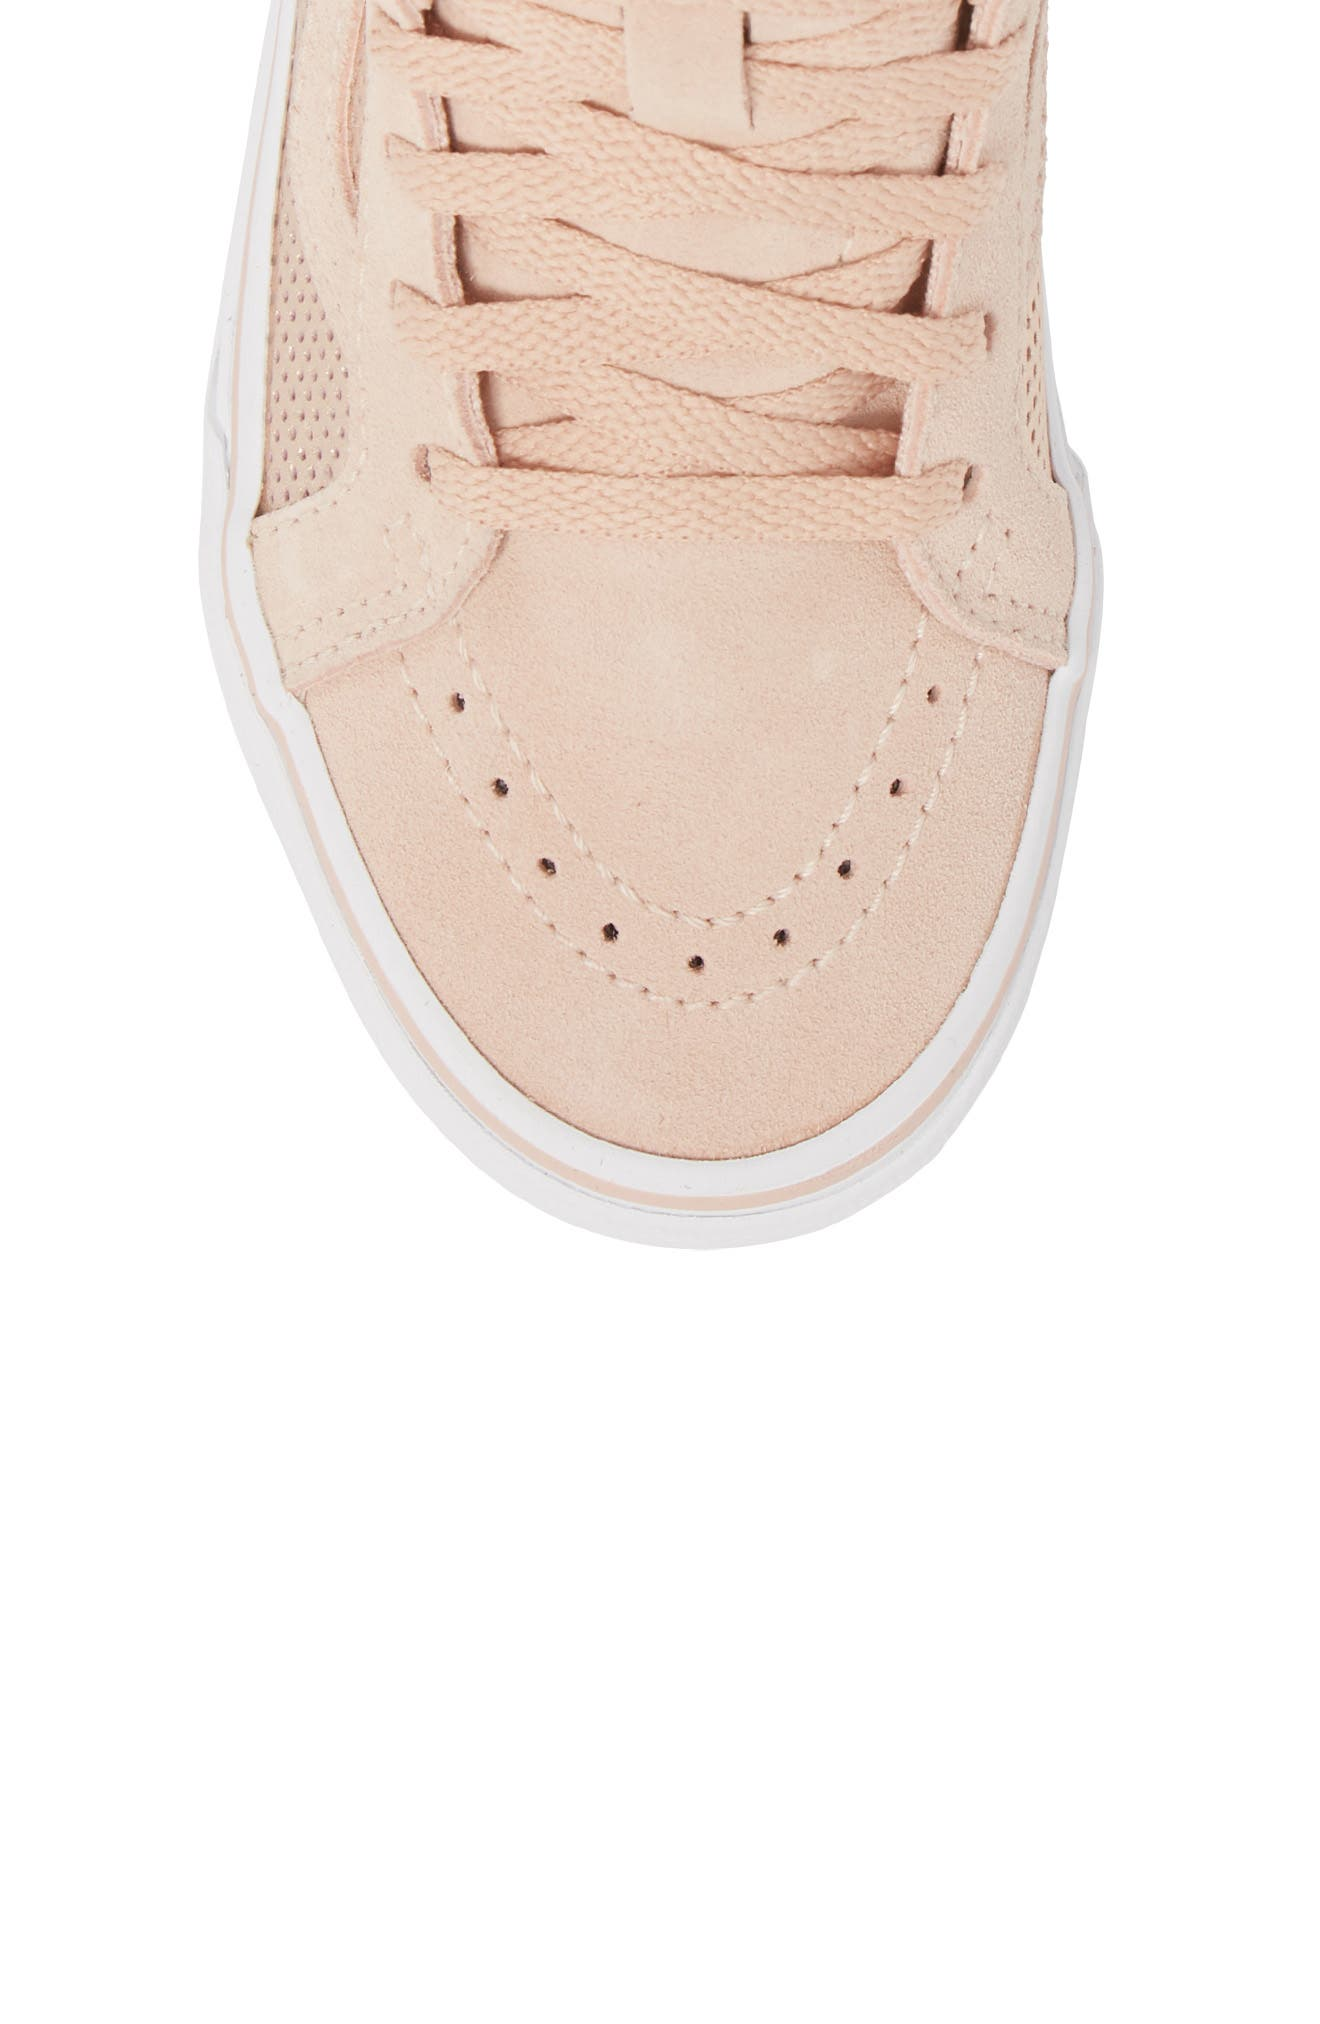 SK8-Hi Zip Sneaker,                             Alternate thumbnail 5, color,                             ROSE GOLD SUEDE LEATHER